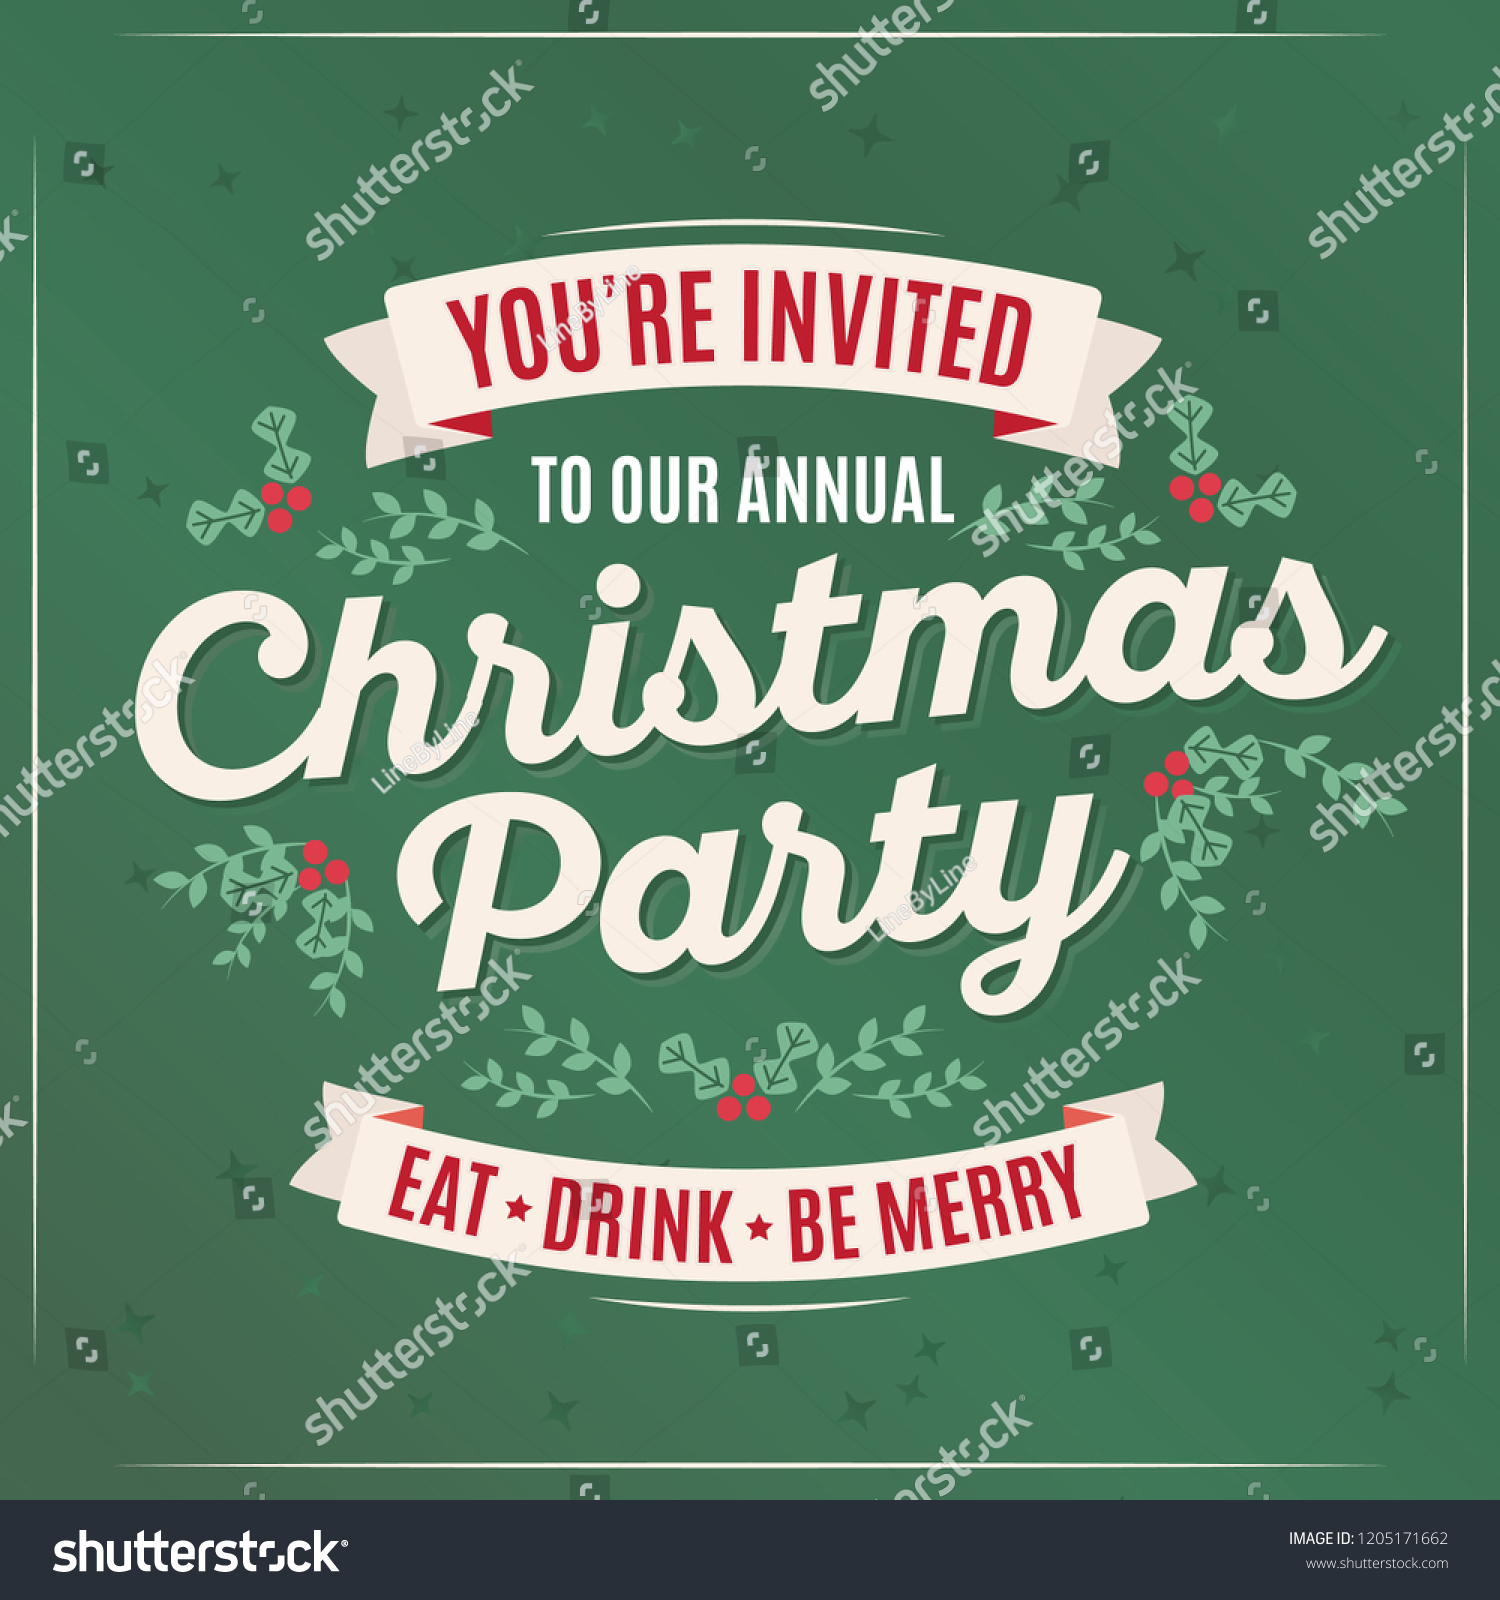 Youre Invited Our Christmas Party Holiday Stock Vector (Royalty Free ...